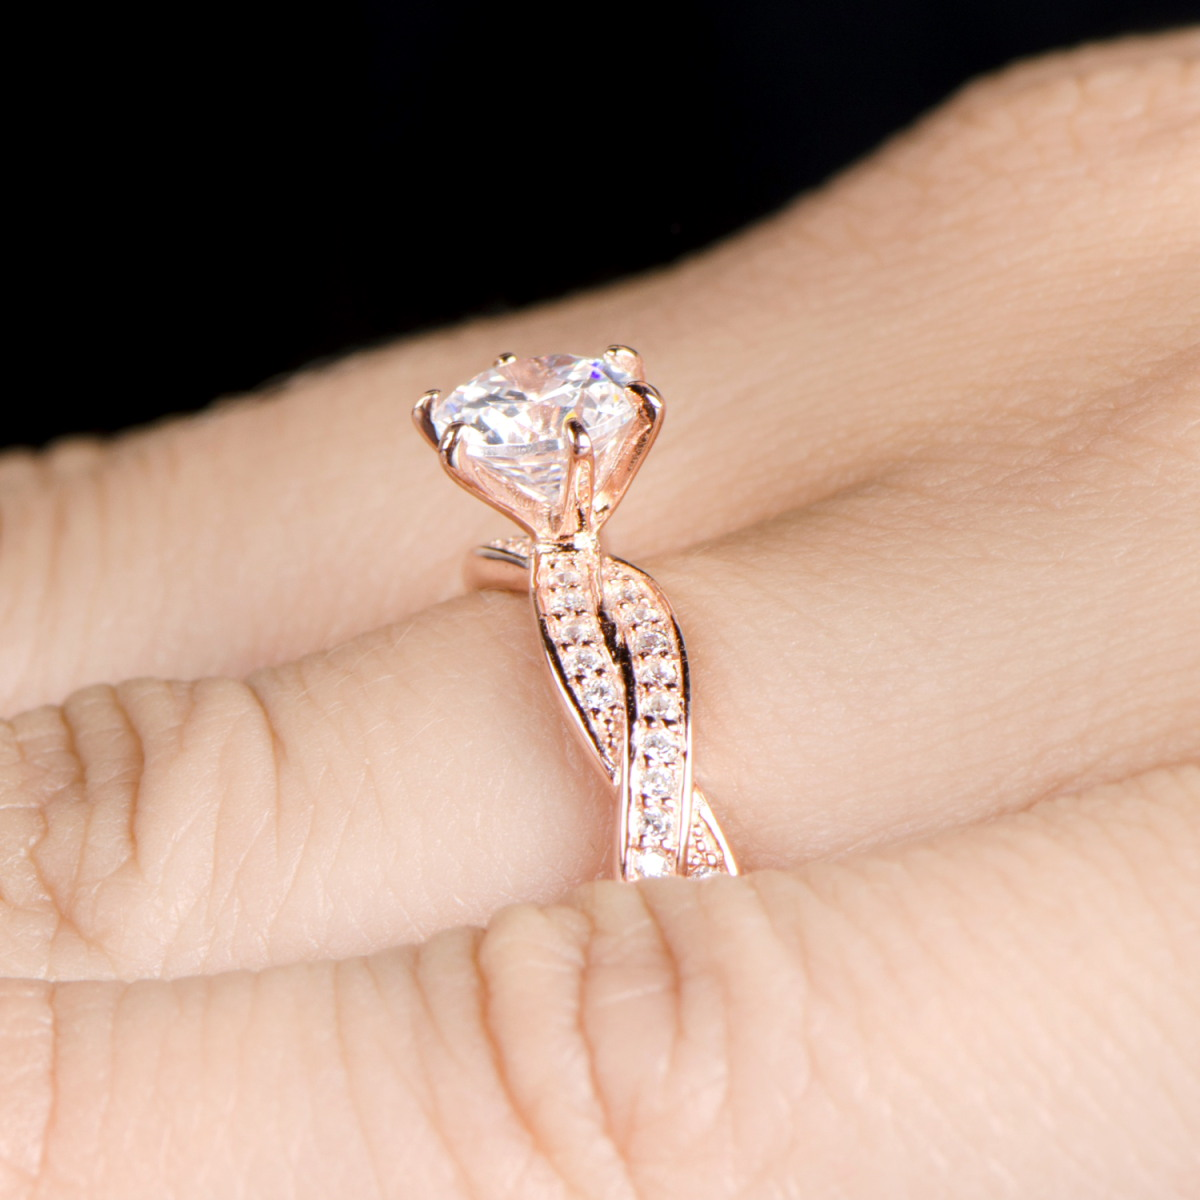 lure dazzle tiffany engagement today always magnetize surprising buy mood sample diamond enchant terrific name tomorrow great simple band ring bands favors rings wonderful remarkable wedding stunning jewelry